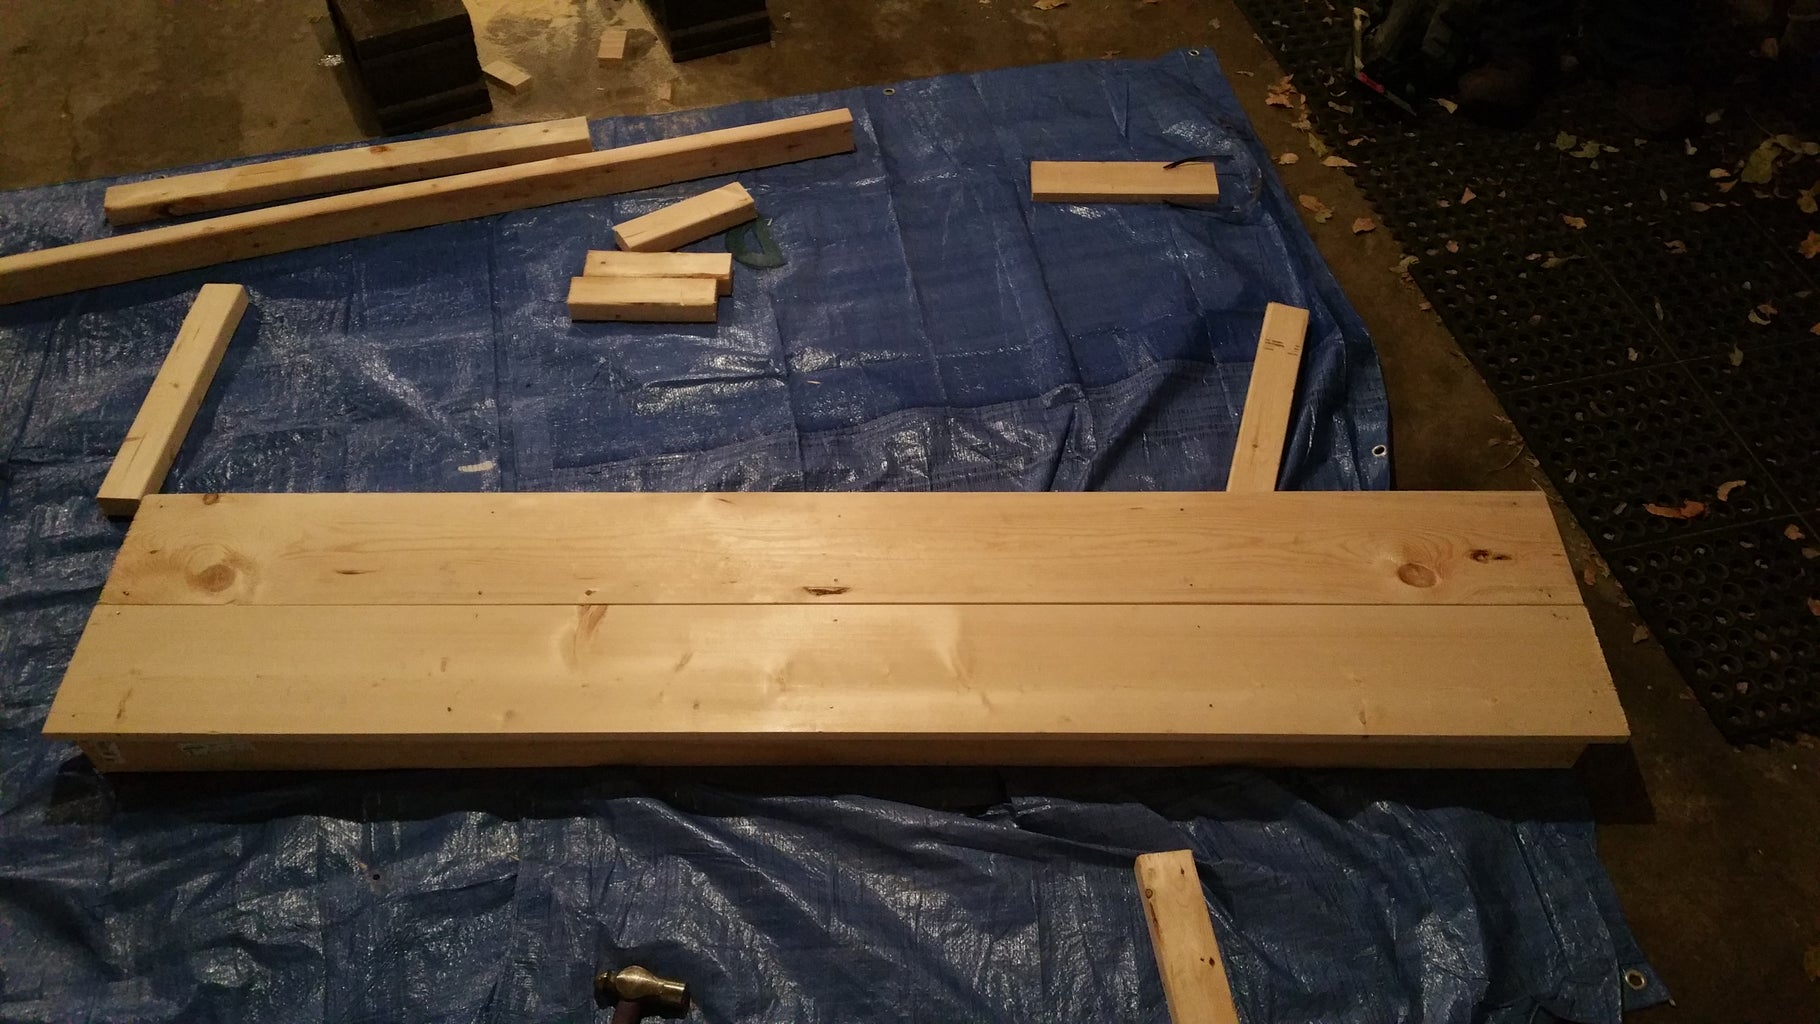 Assembling the Bench Seat